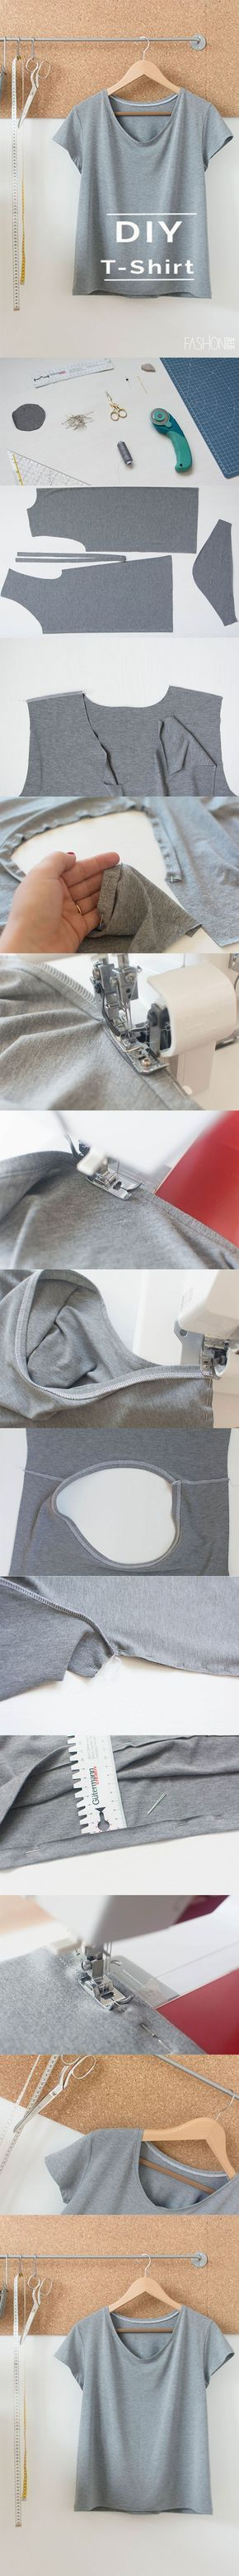 DIY FASHION ^ DIY T-SHIRT ^ SELFMADEFASHION ^ T-SHIRT NÄHEN